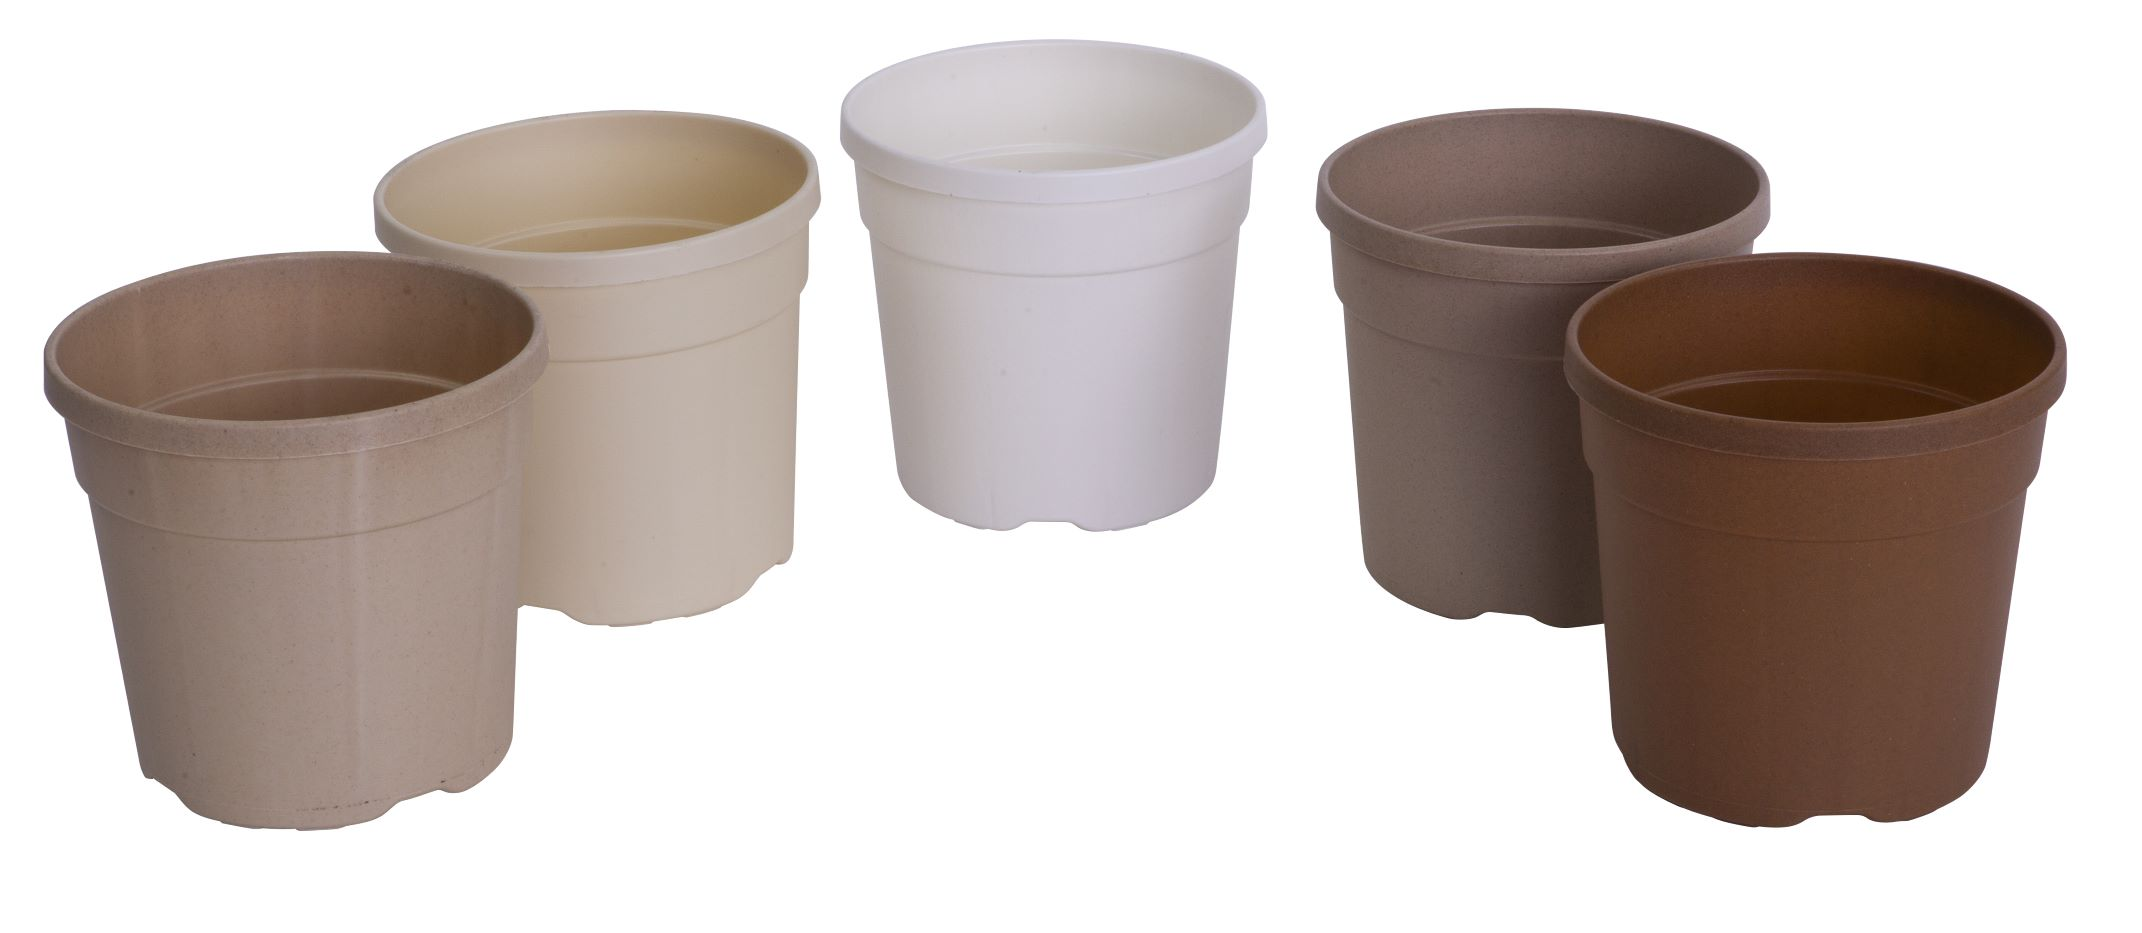 GEA - POTS PRODUCED WITH COMPOSTABLE COMPOUNDS